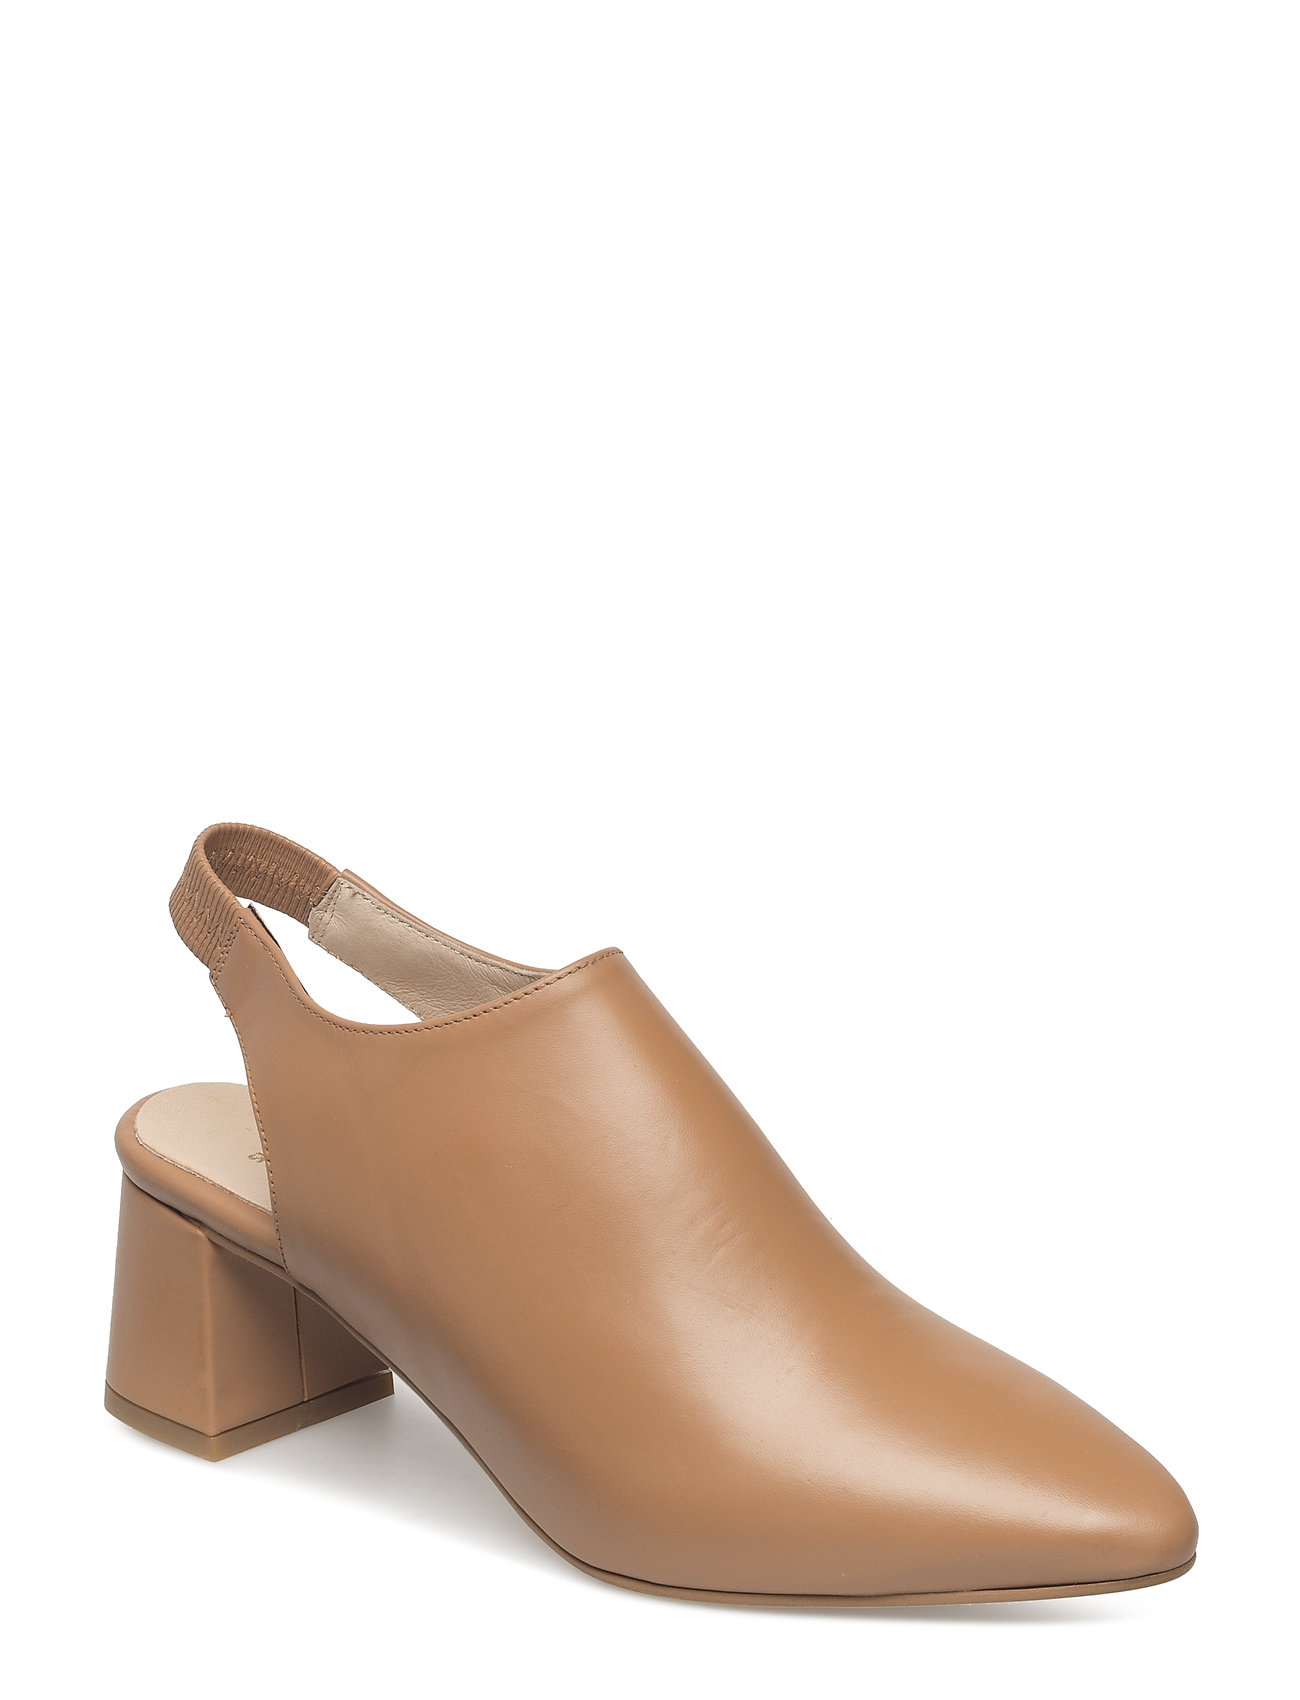 Shoe The Bear ALLISON SLINGBACK L - TAN